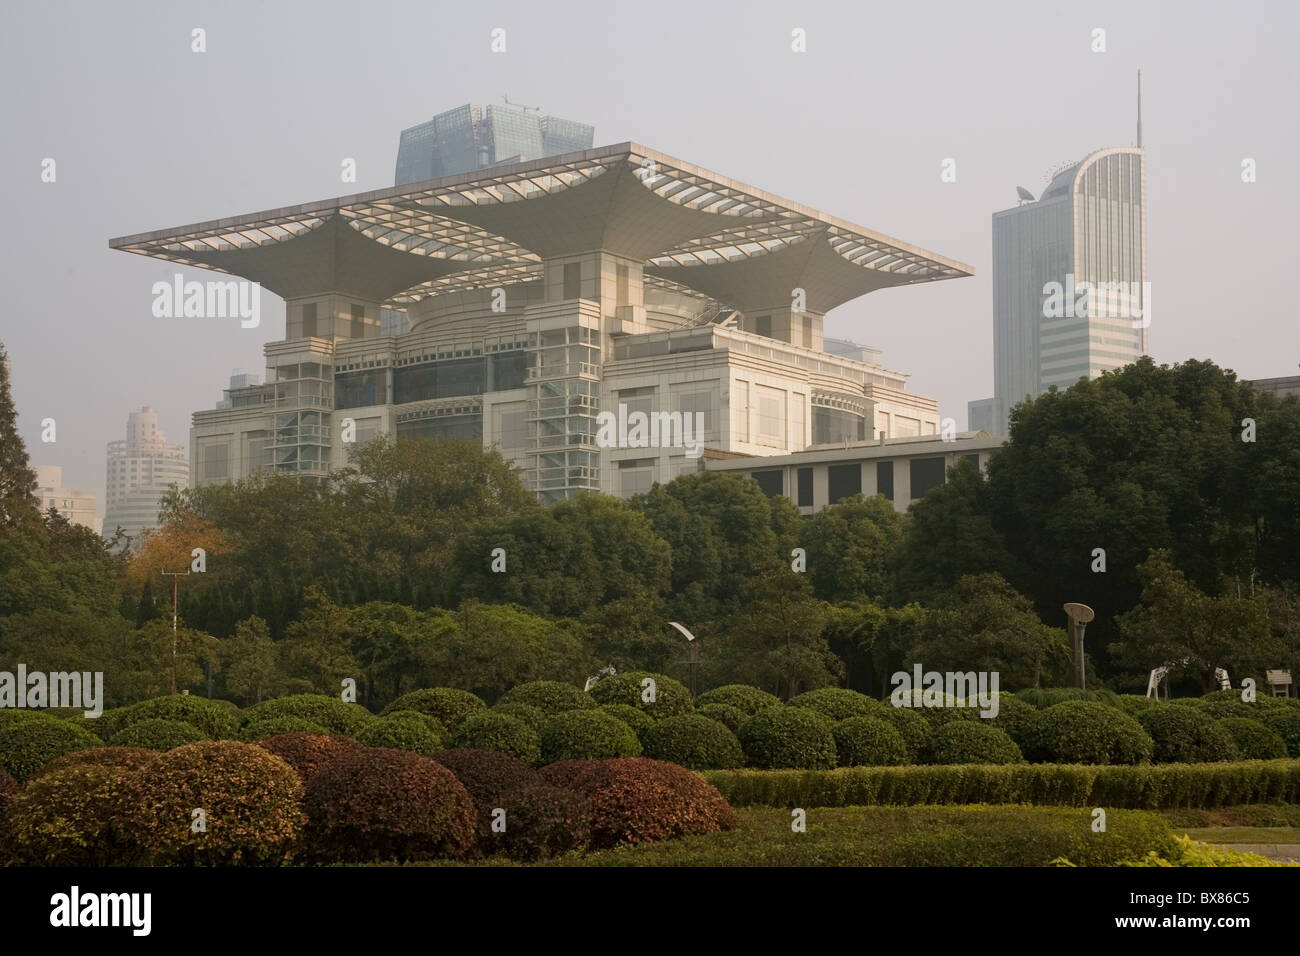 China Shanghai Renmin park & Urban Planning museum - Stock Image